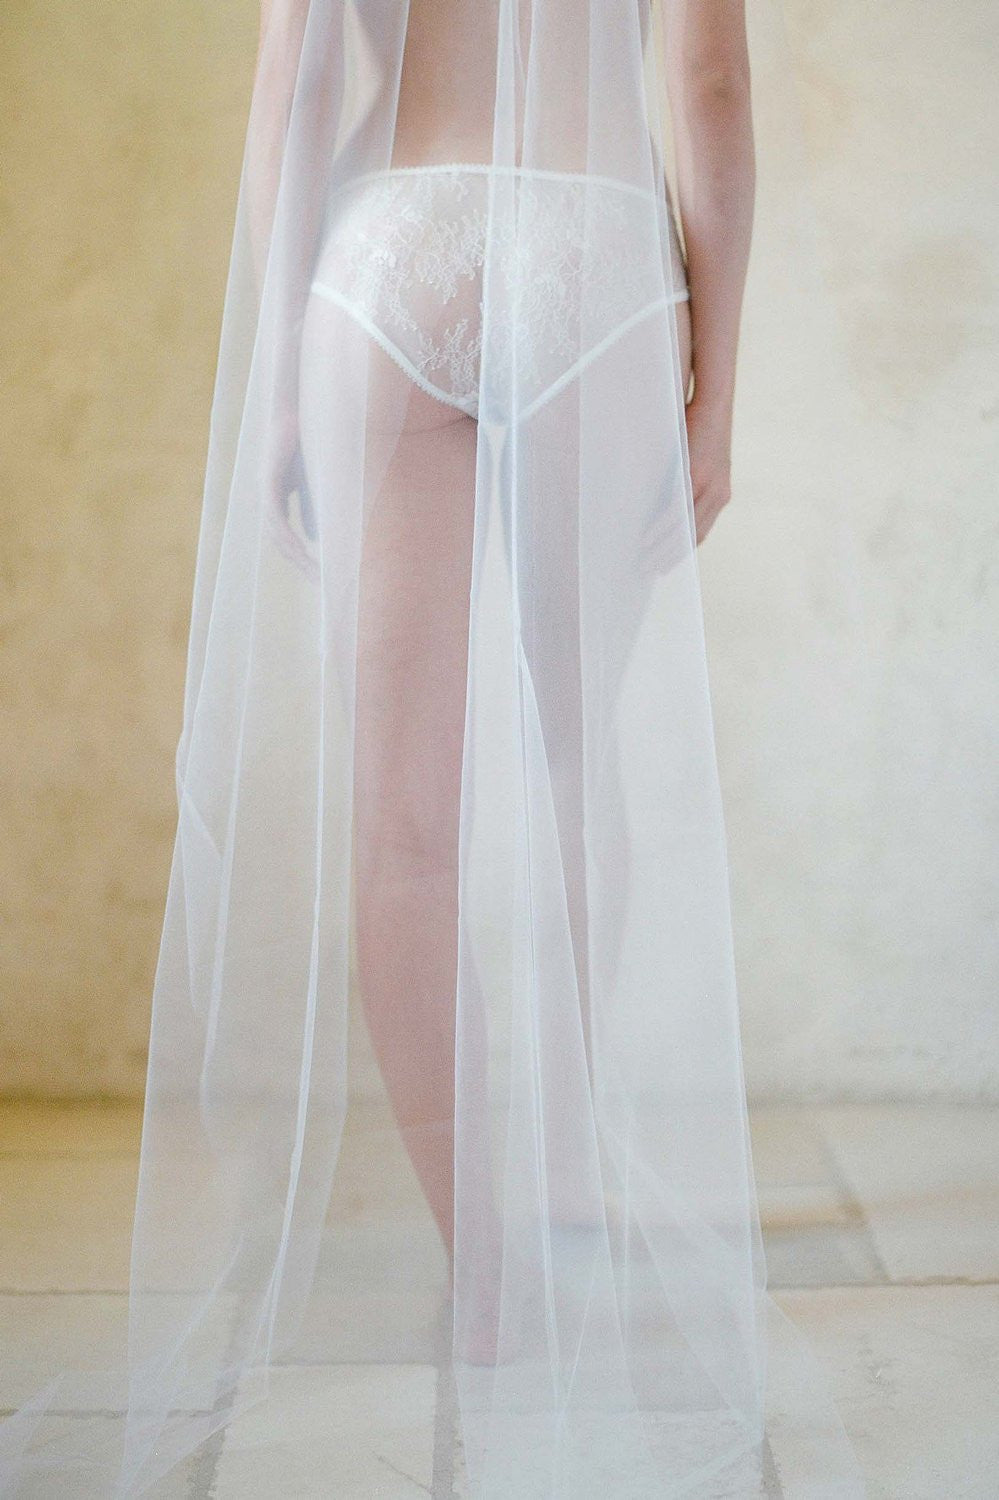 BREEZY SINGLE LAYER VEIL - STYLE V91